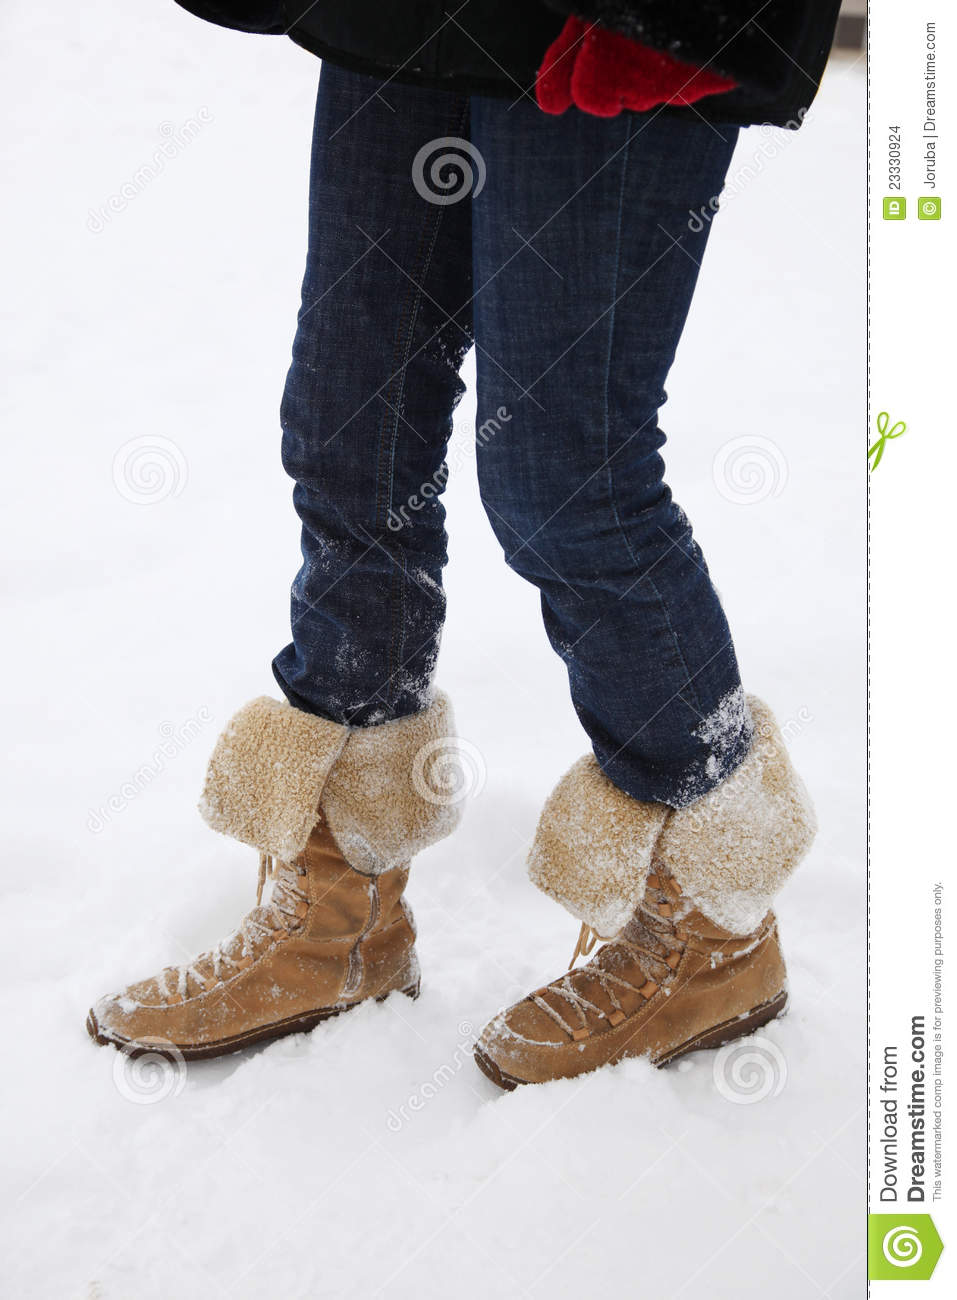 Outdoor Design Snow Boots | Santa Barbara Institute for ...